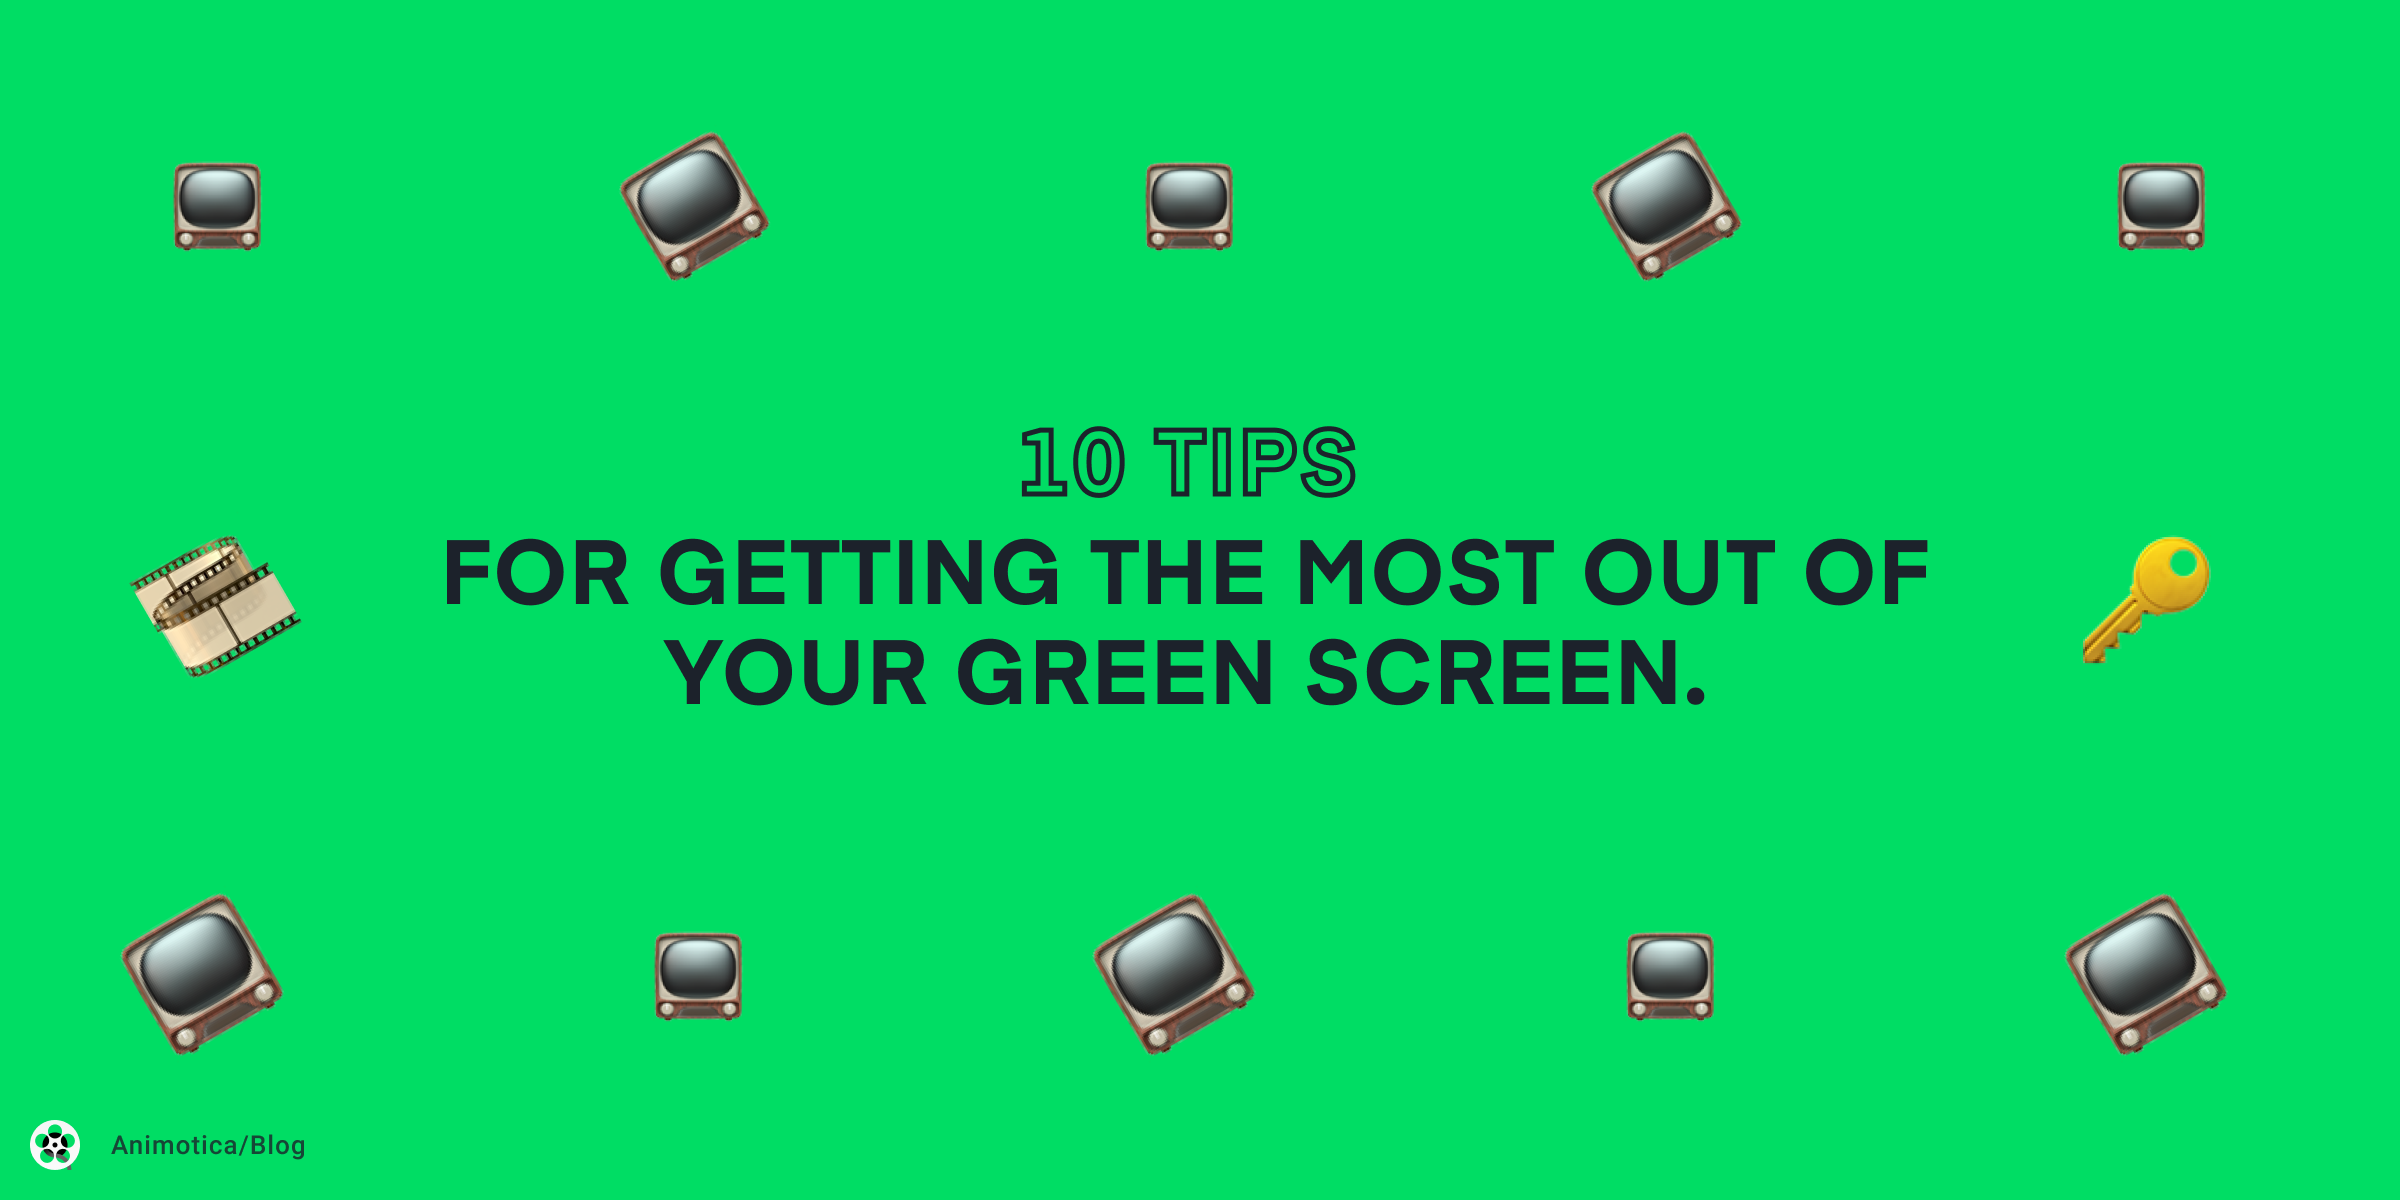 Stupendous 10 Tips For Getting The Most Out Of Your Green Screen Squirreltailoven Fun Painted Chair Ideas Images Squirreltailovenorg